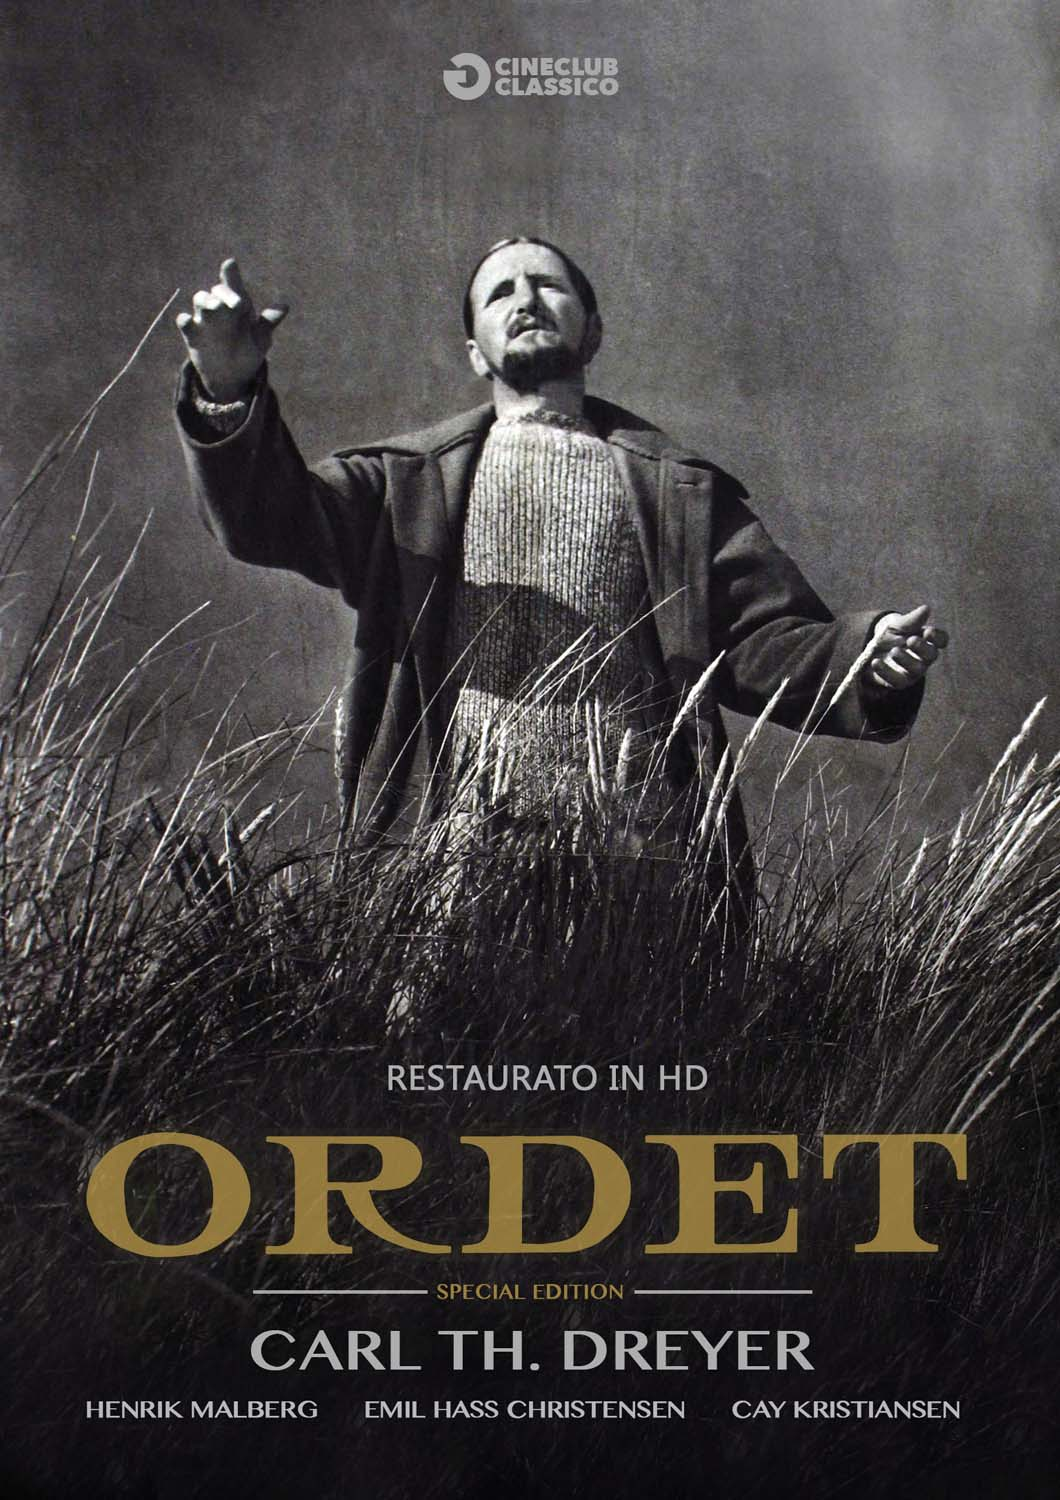 ORDET (SPECIAL EDITION) (RESTAURATO IN HD) (DVD)